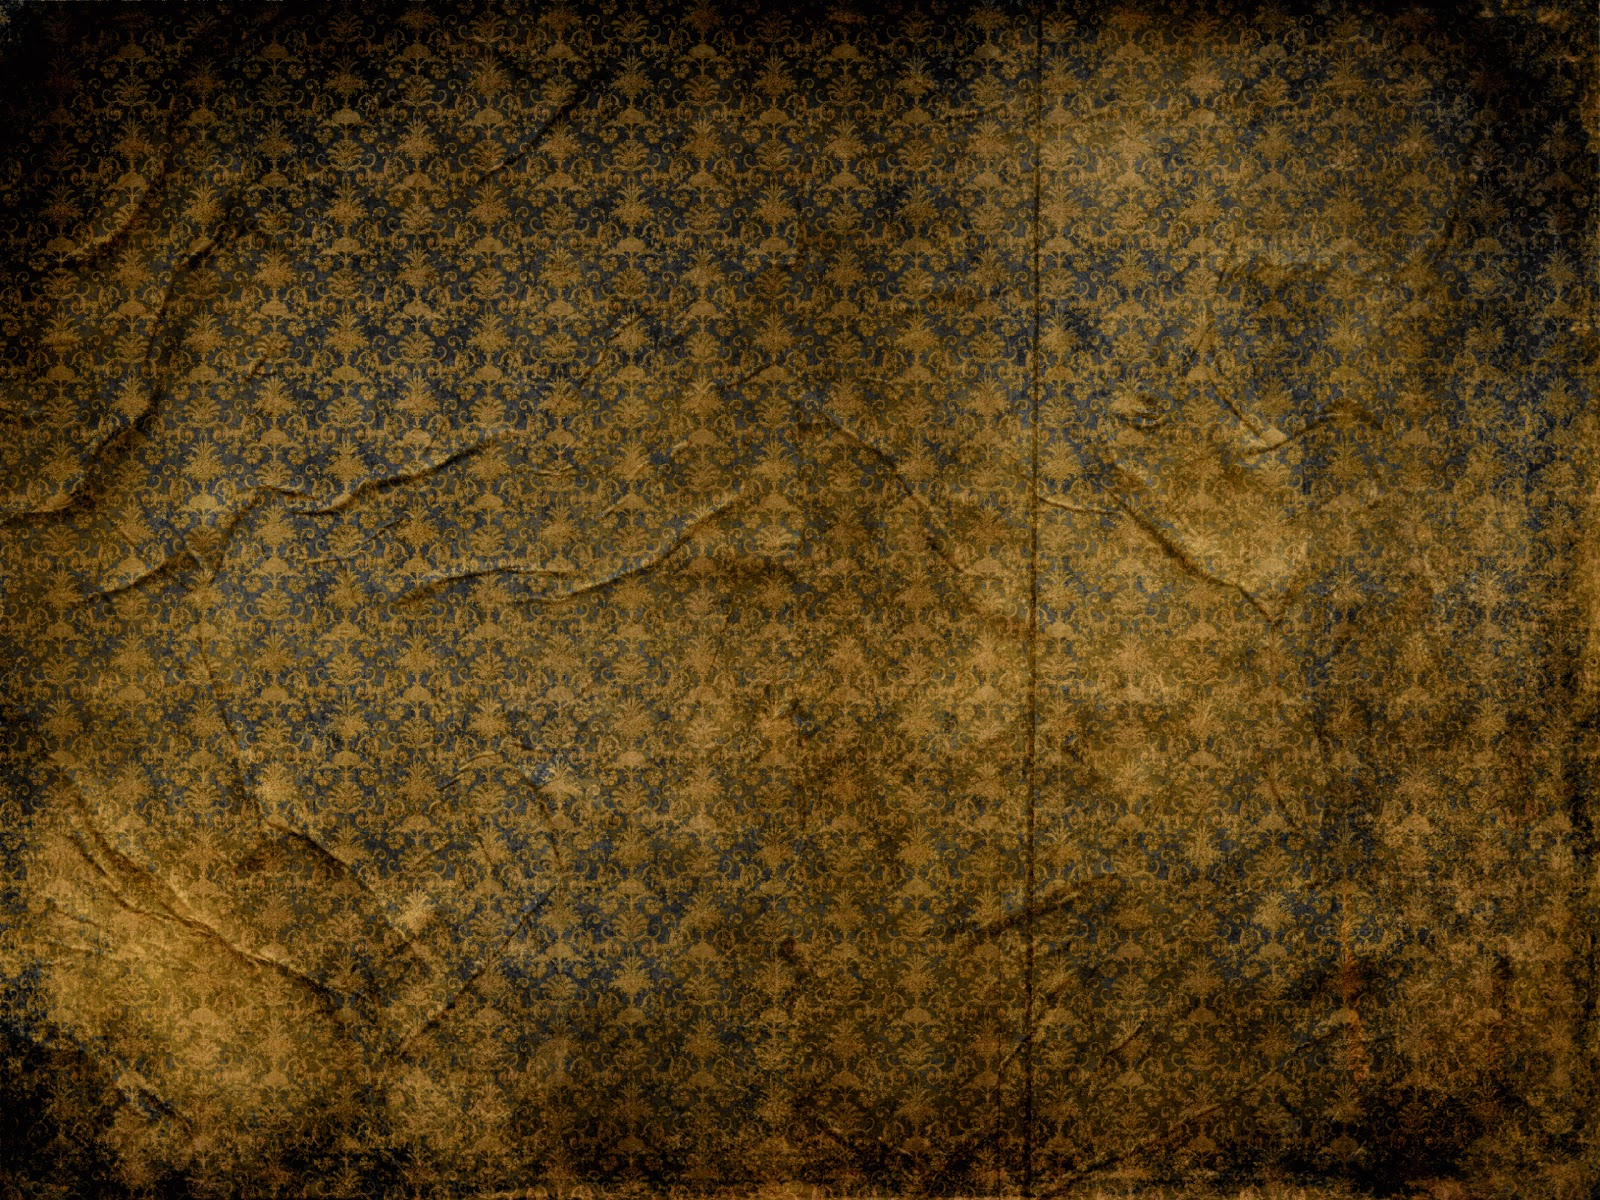 Black and gold wallpaper 95 background - Gold desktop background ...